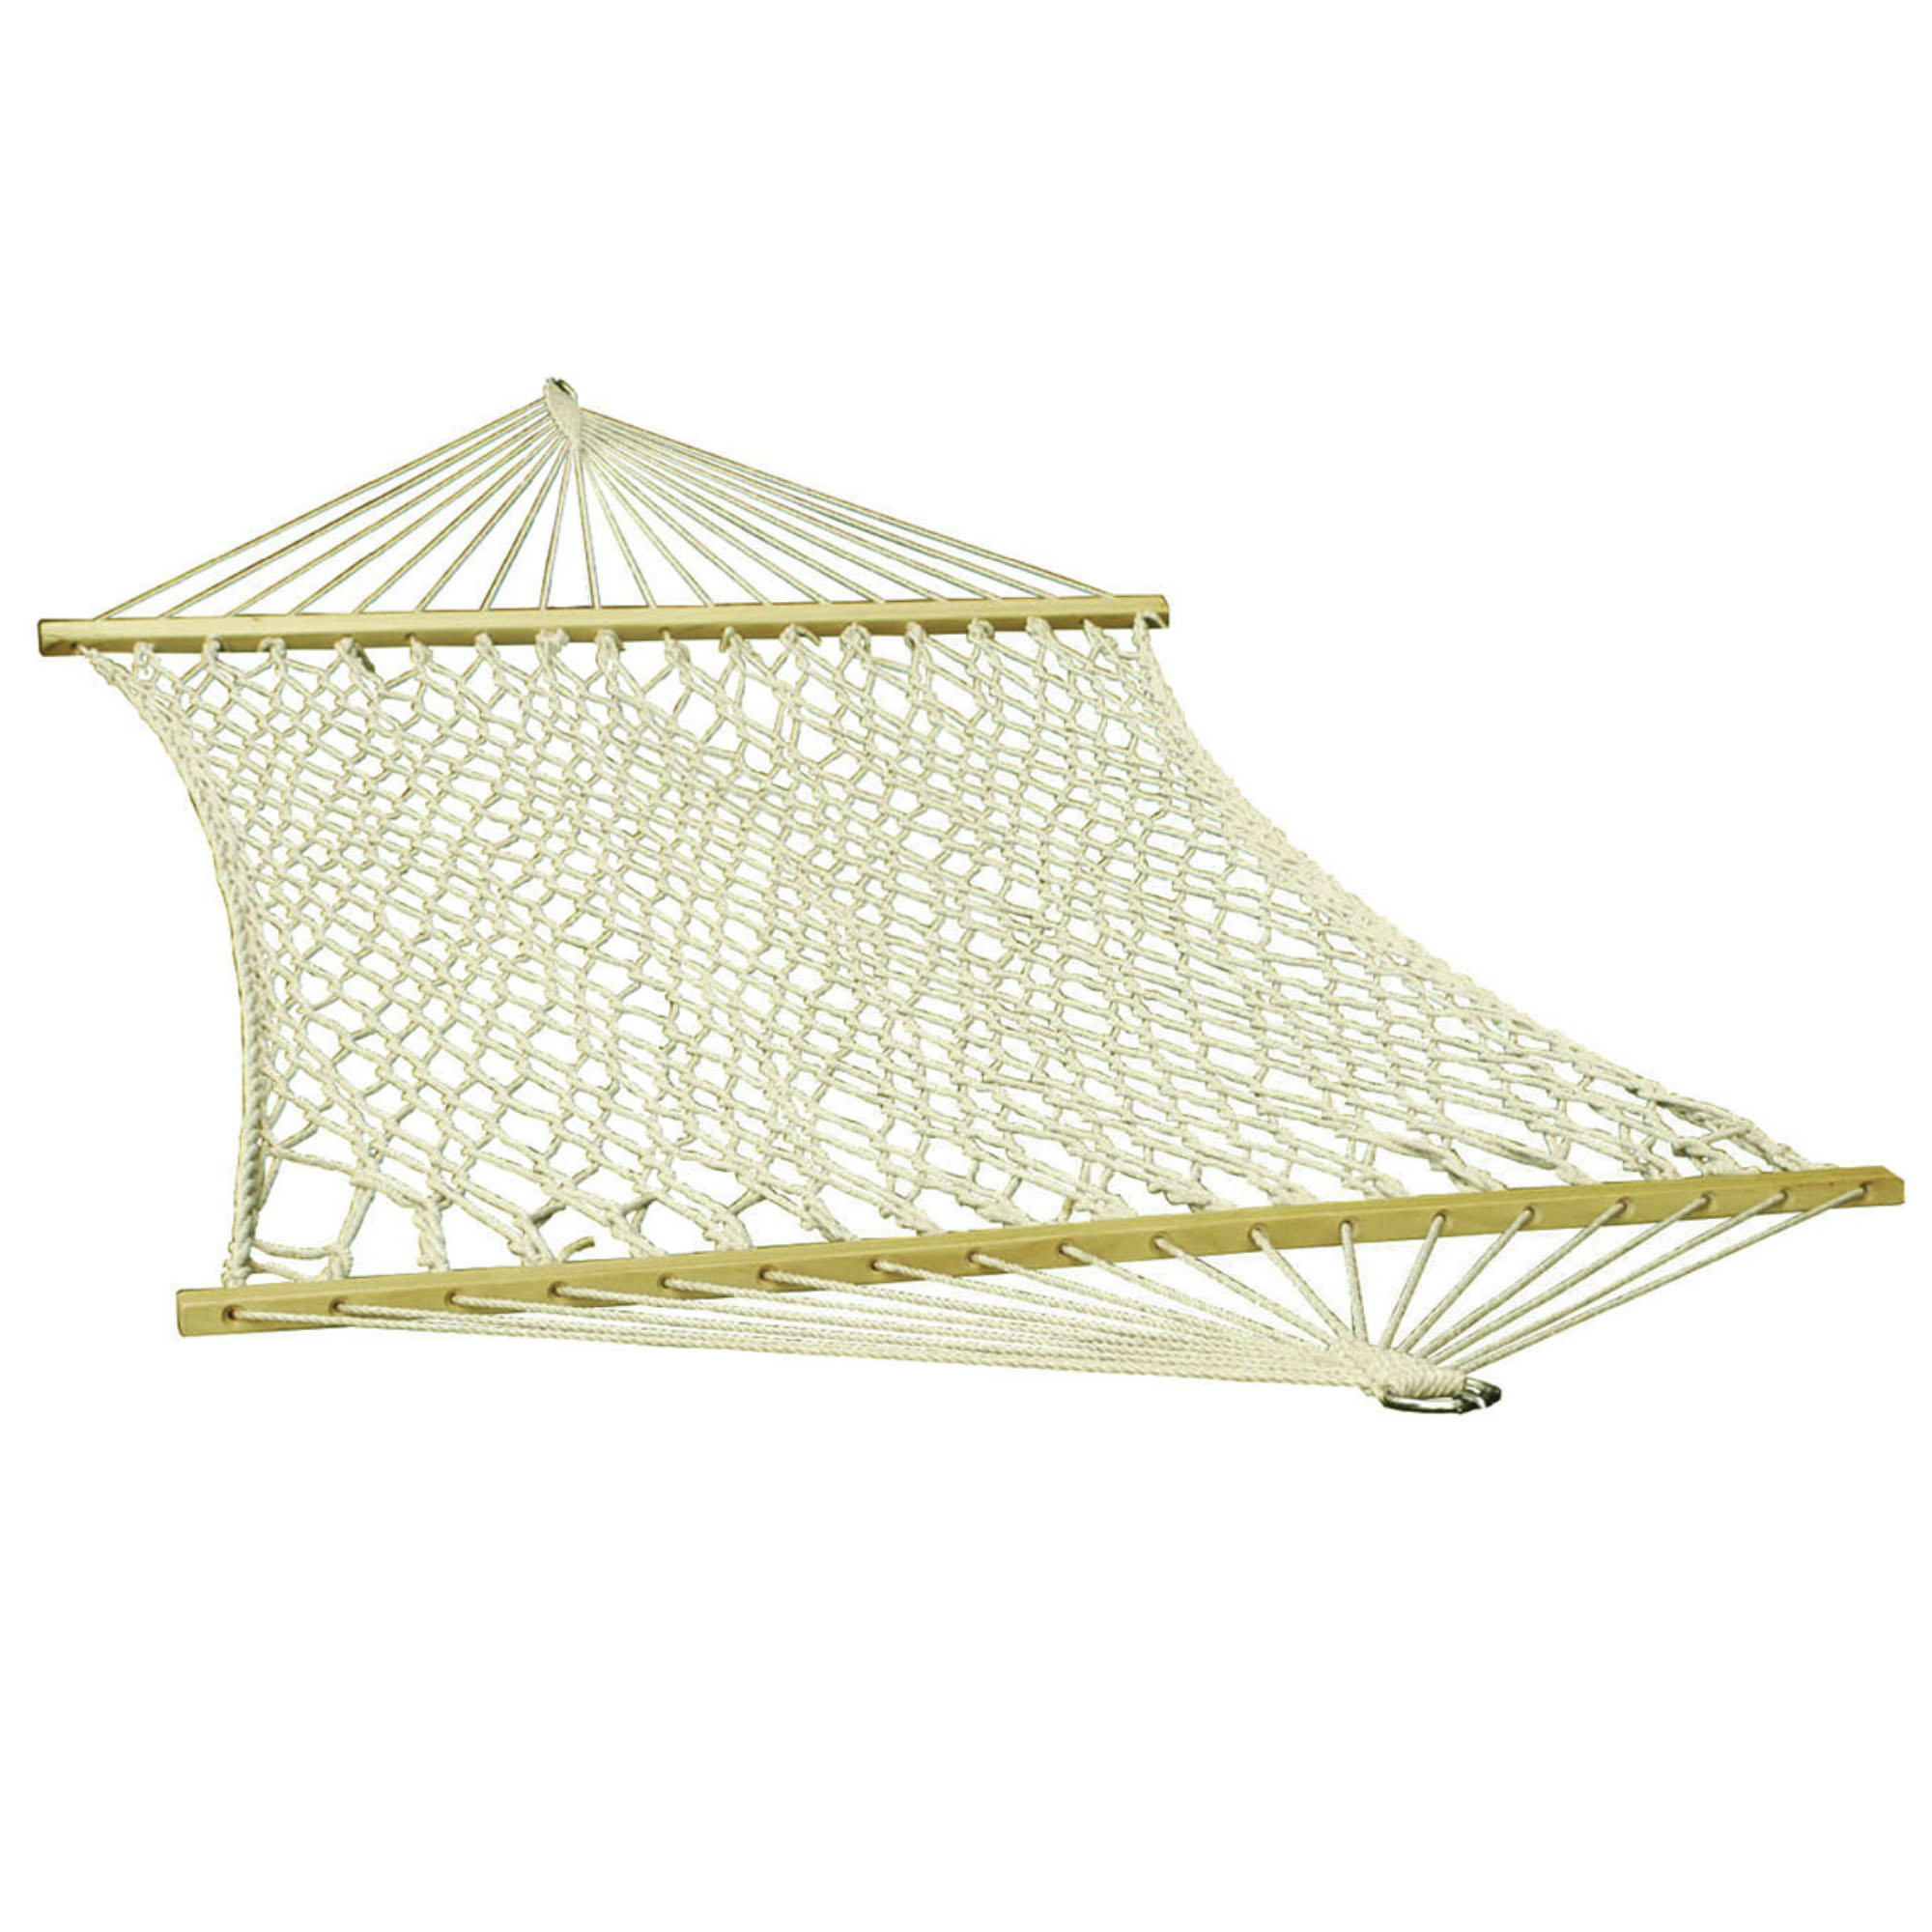 Cotton Rope Hammock Off White Metropolitan Wholesale